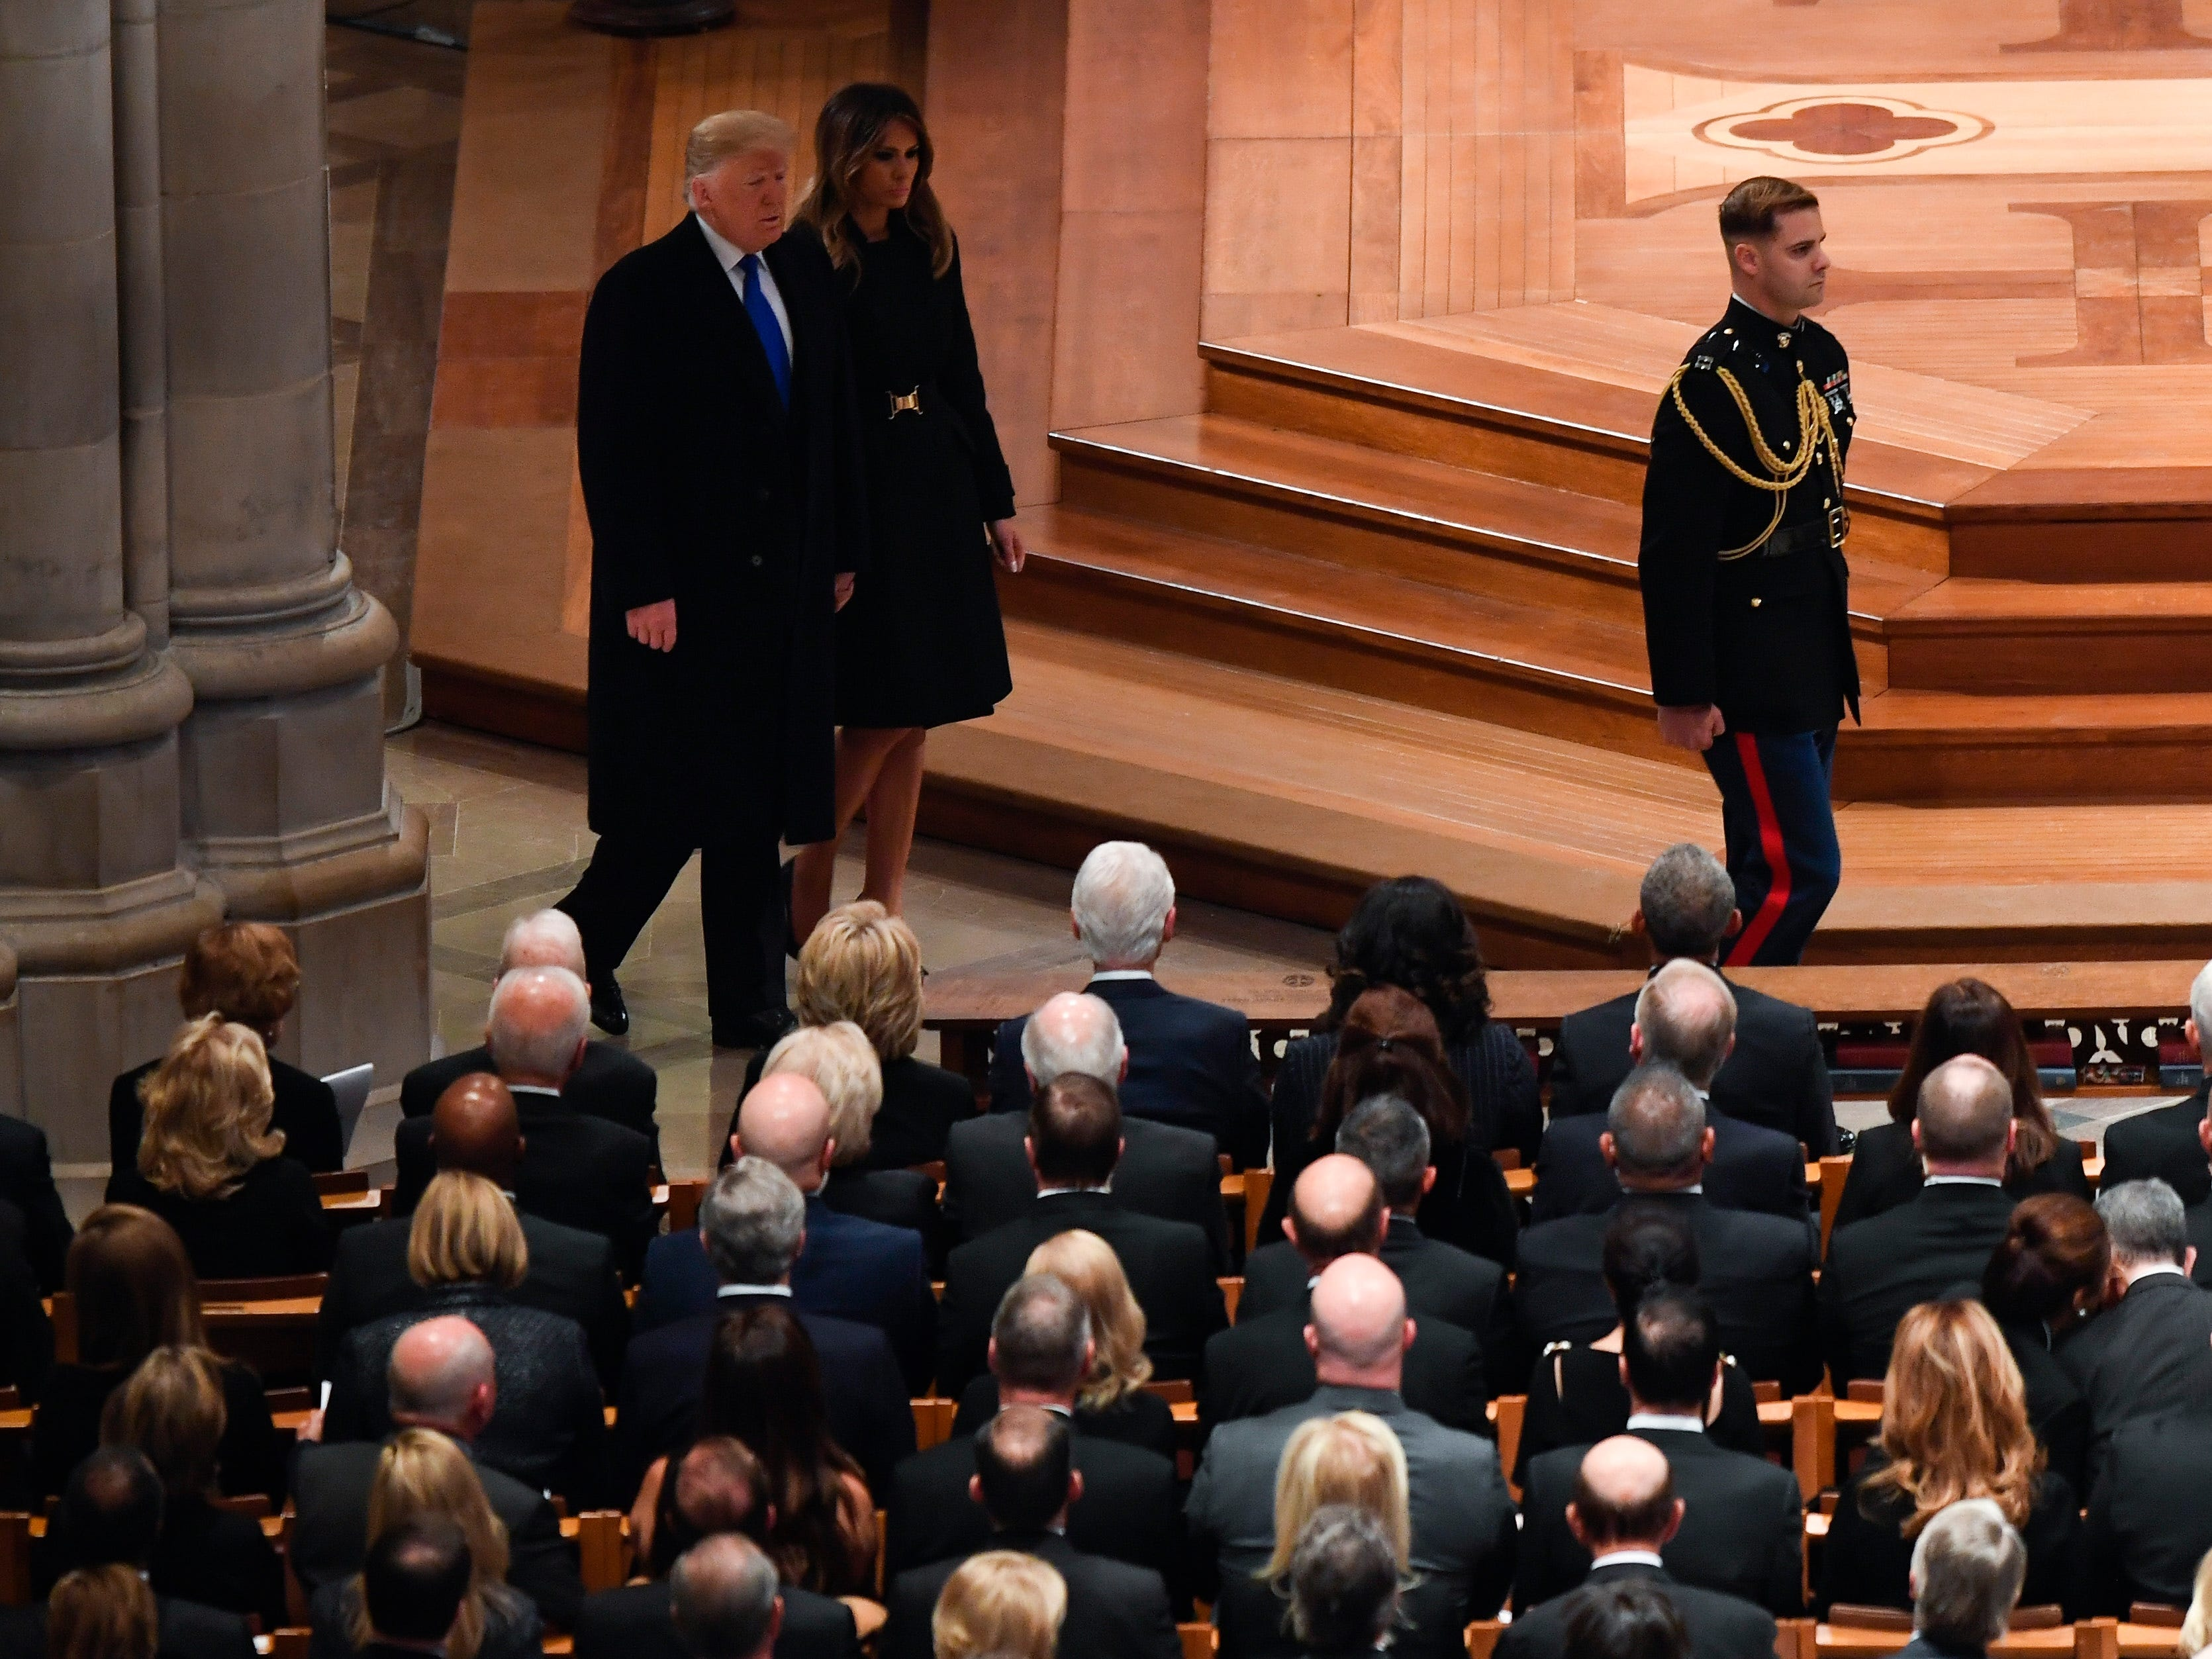 President Donald Trump and first lady Melania Trump arrive at a State Funeral for Former President George H.W. Bush at the Washington National Cathedral in Washington, Dec. 5, 2018.